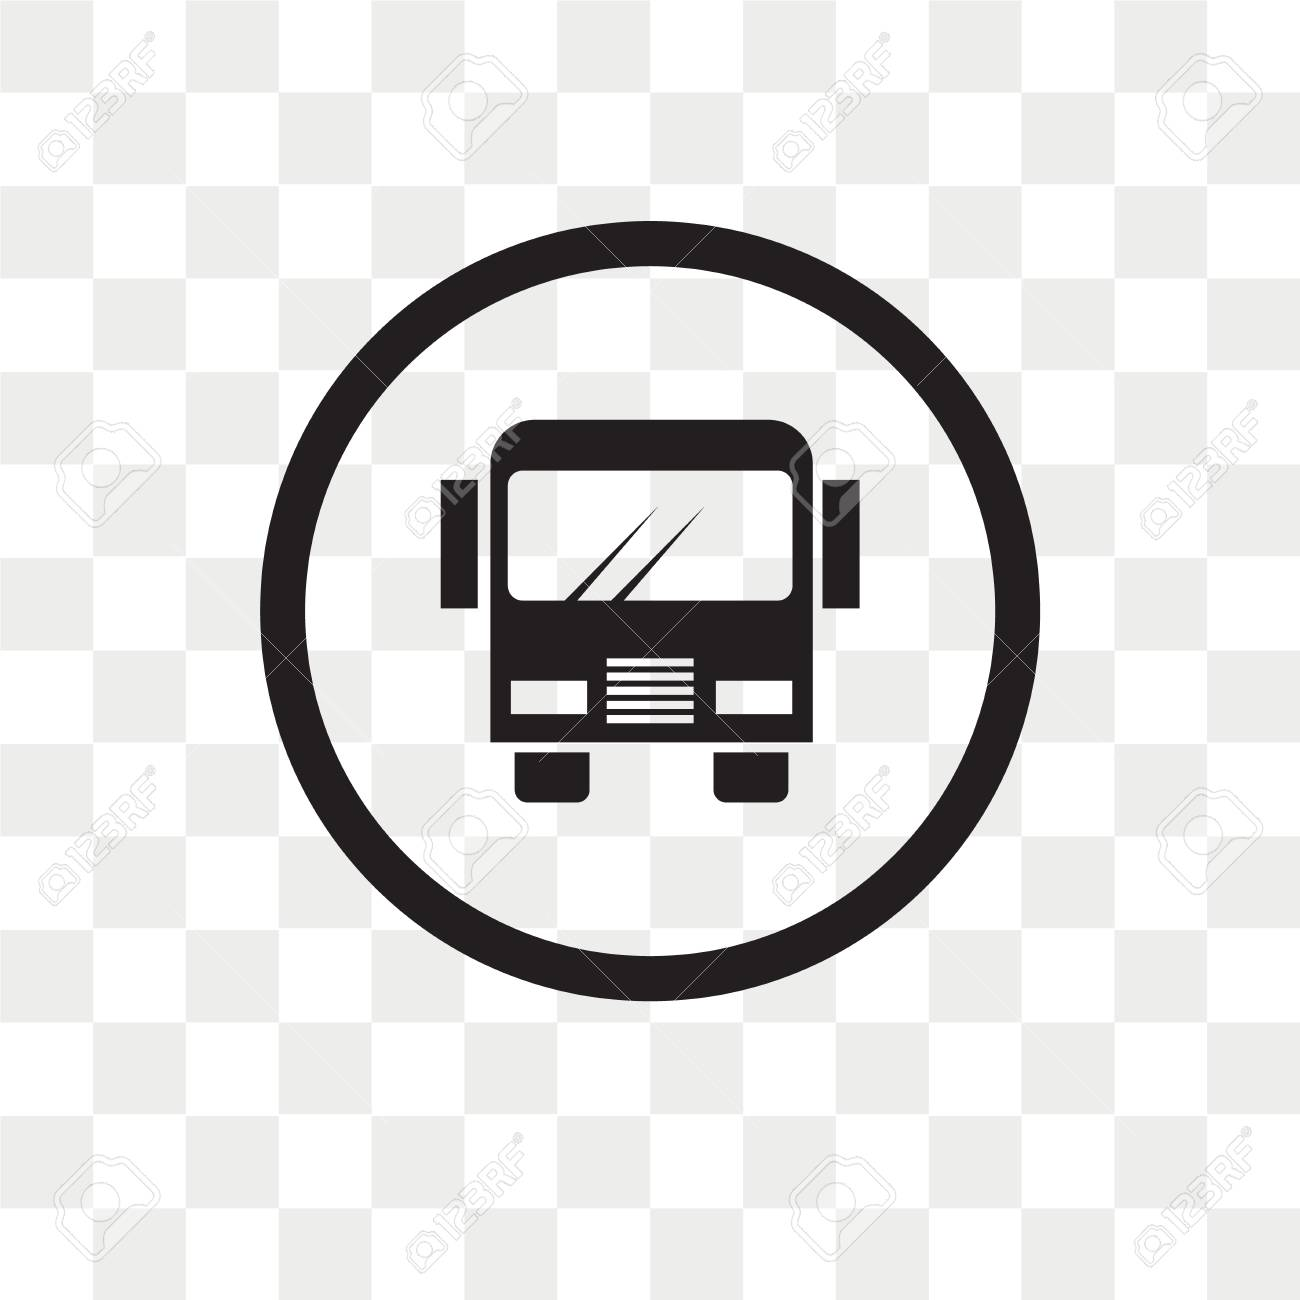 Scholar bus stop vector icon isolated on transparent background,